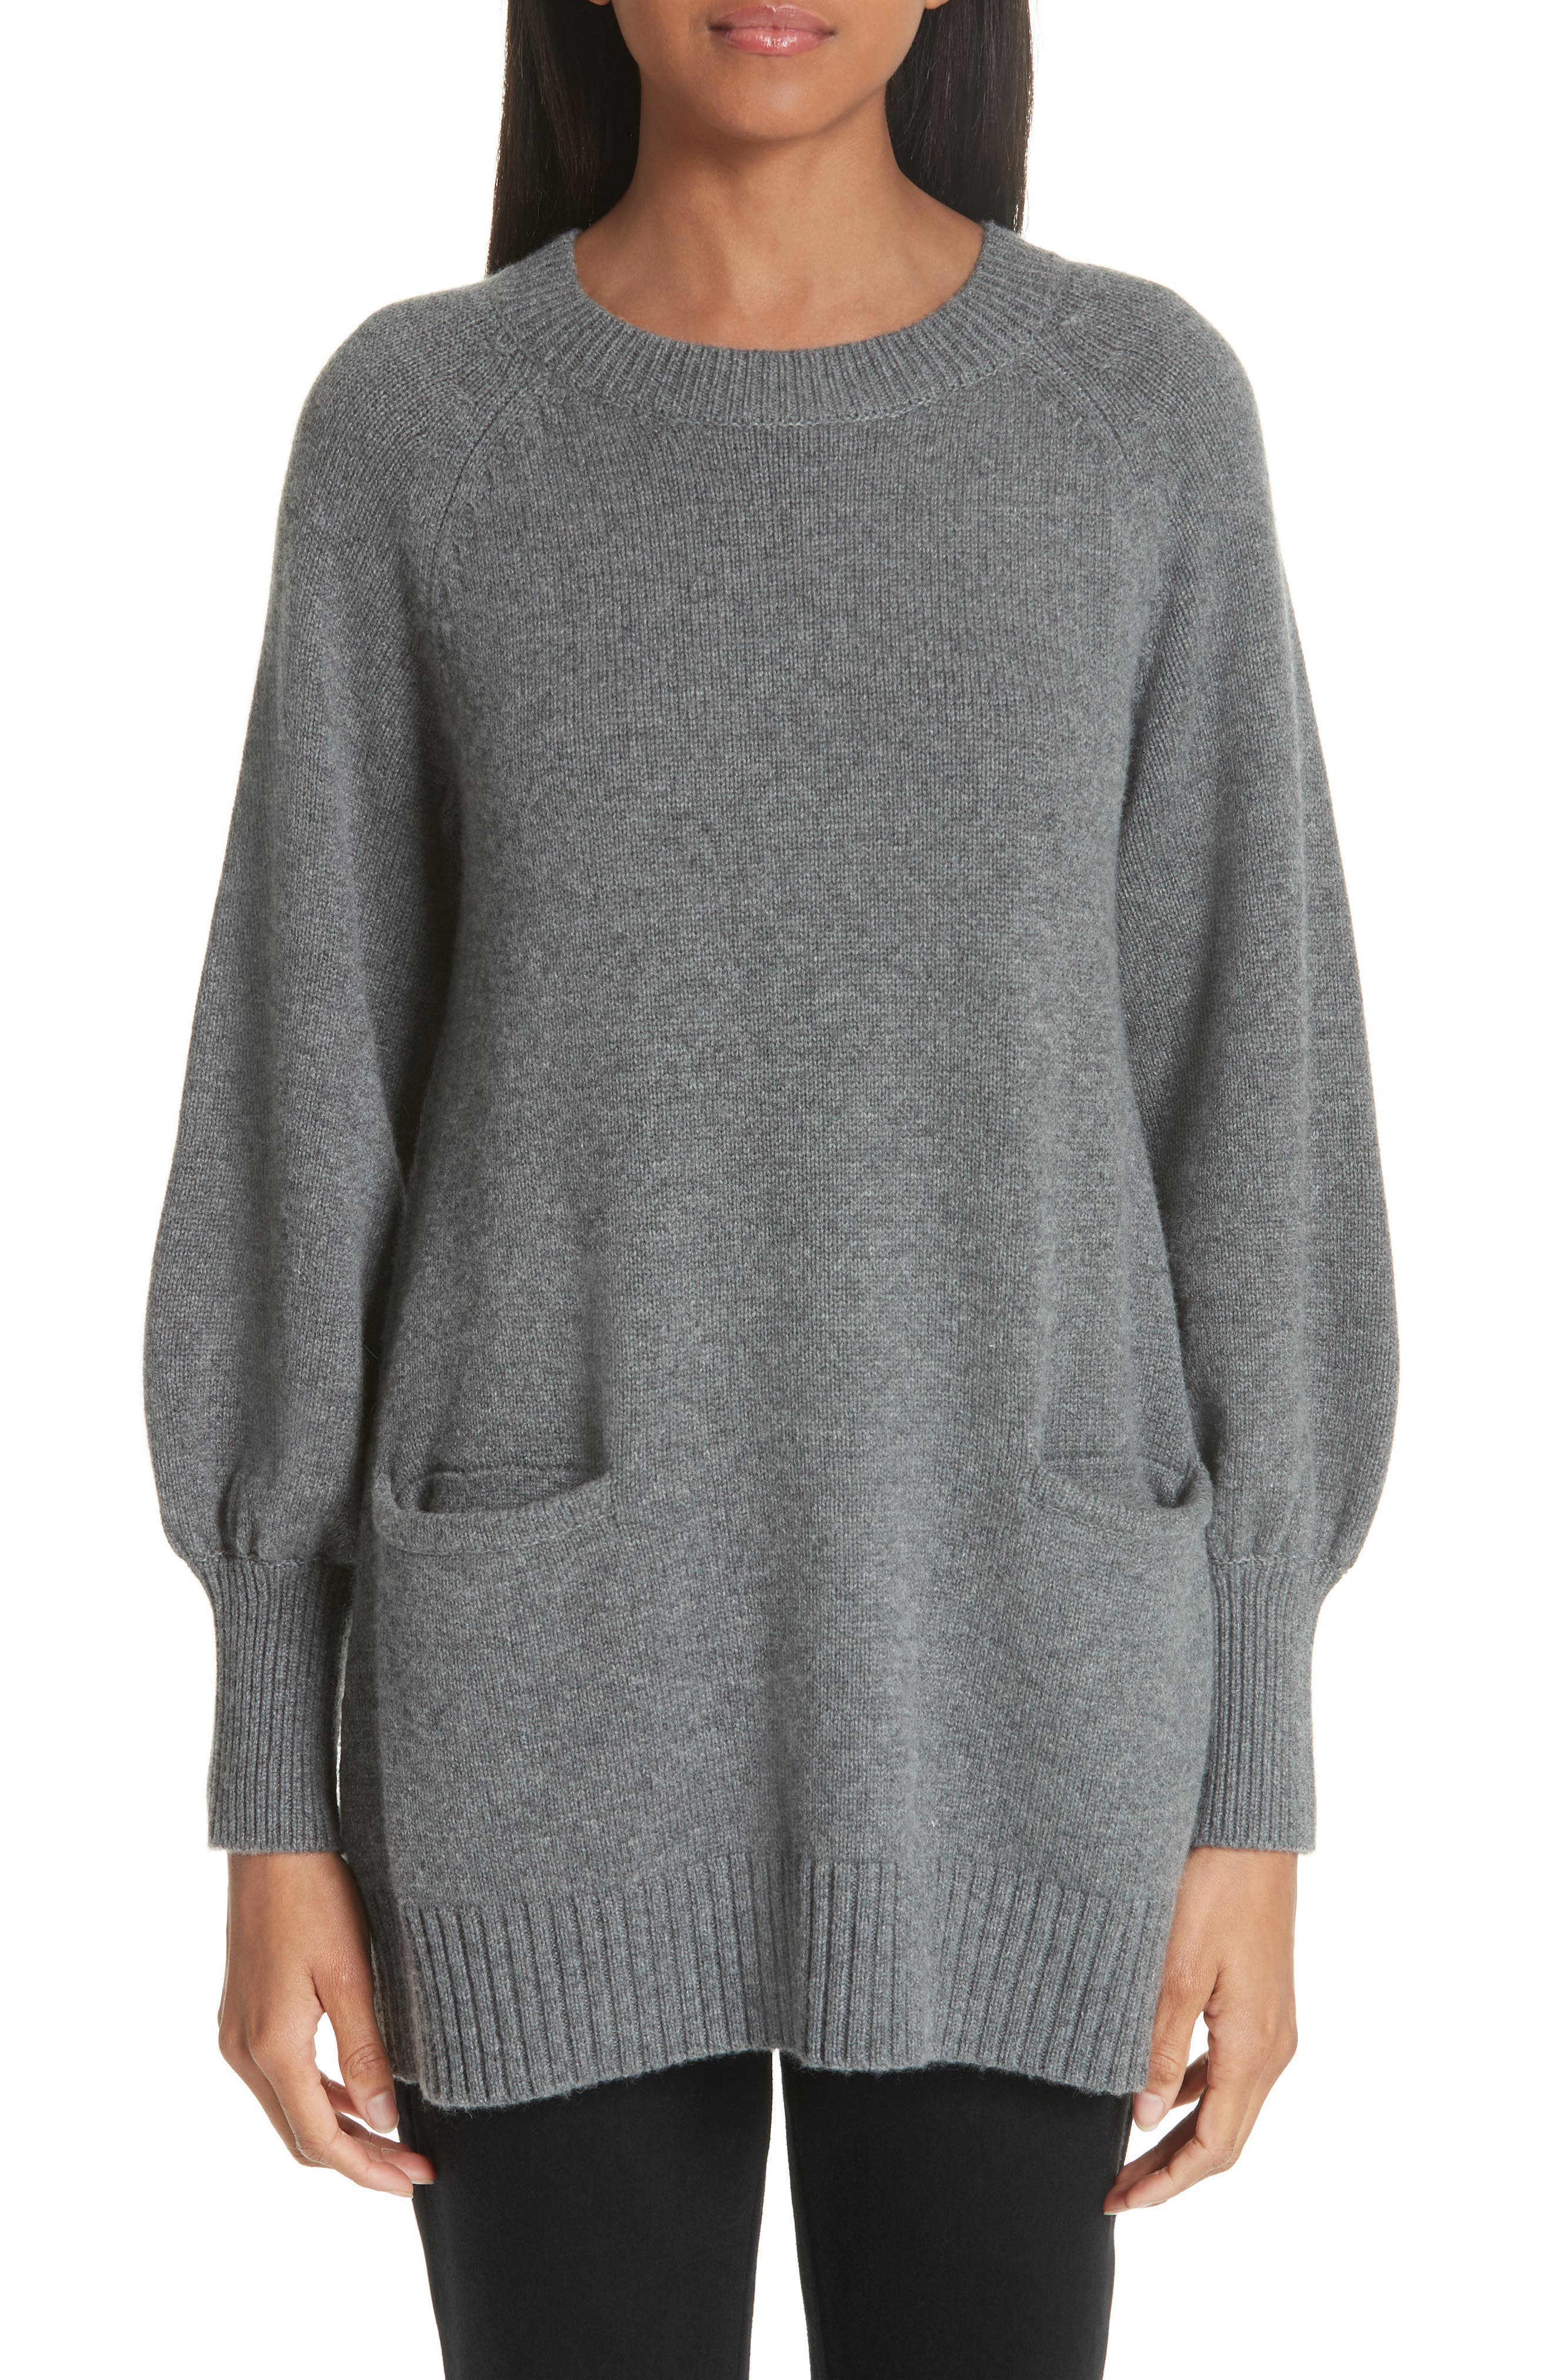 Co Wool & Cashmere Tunic Sweater, Grey